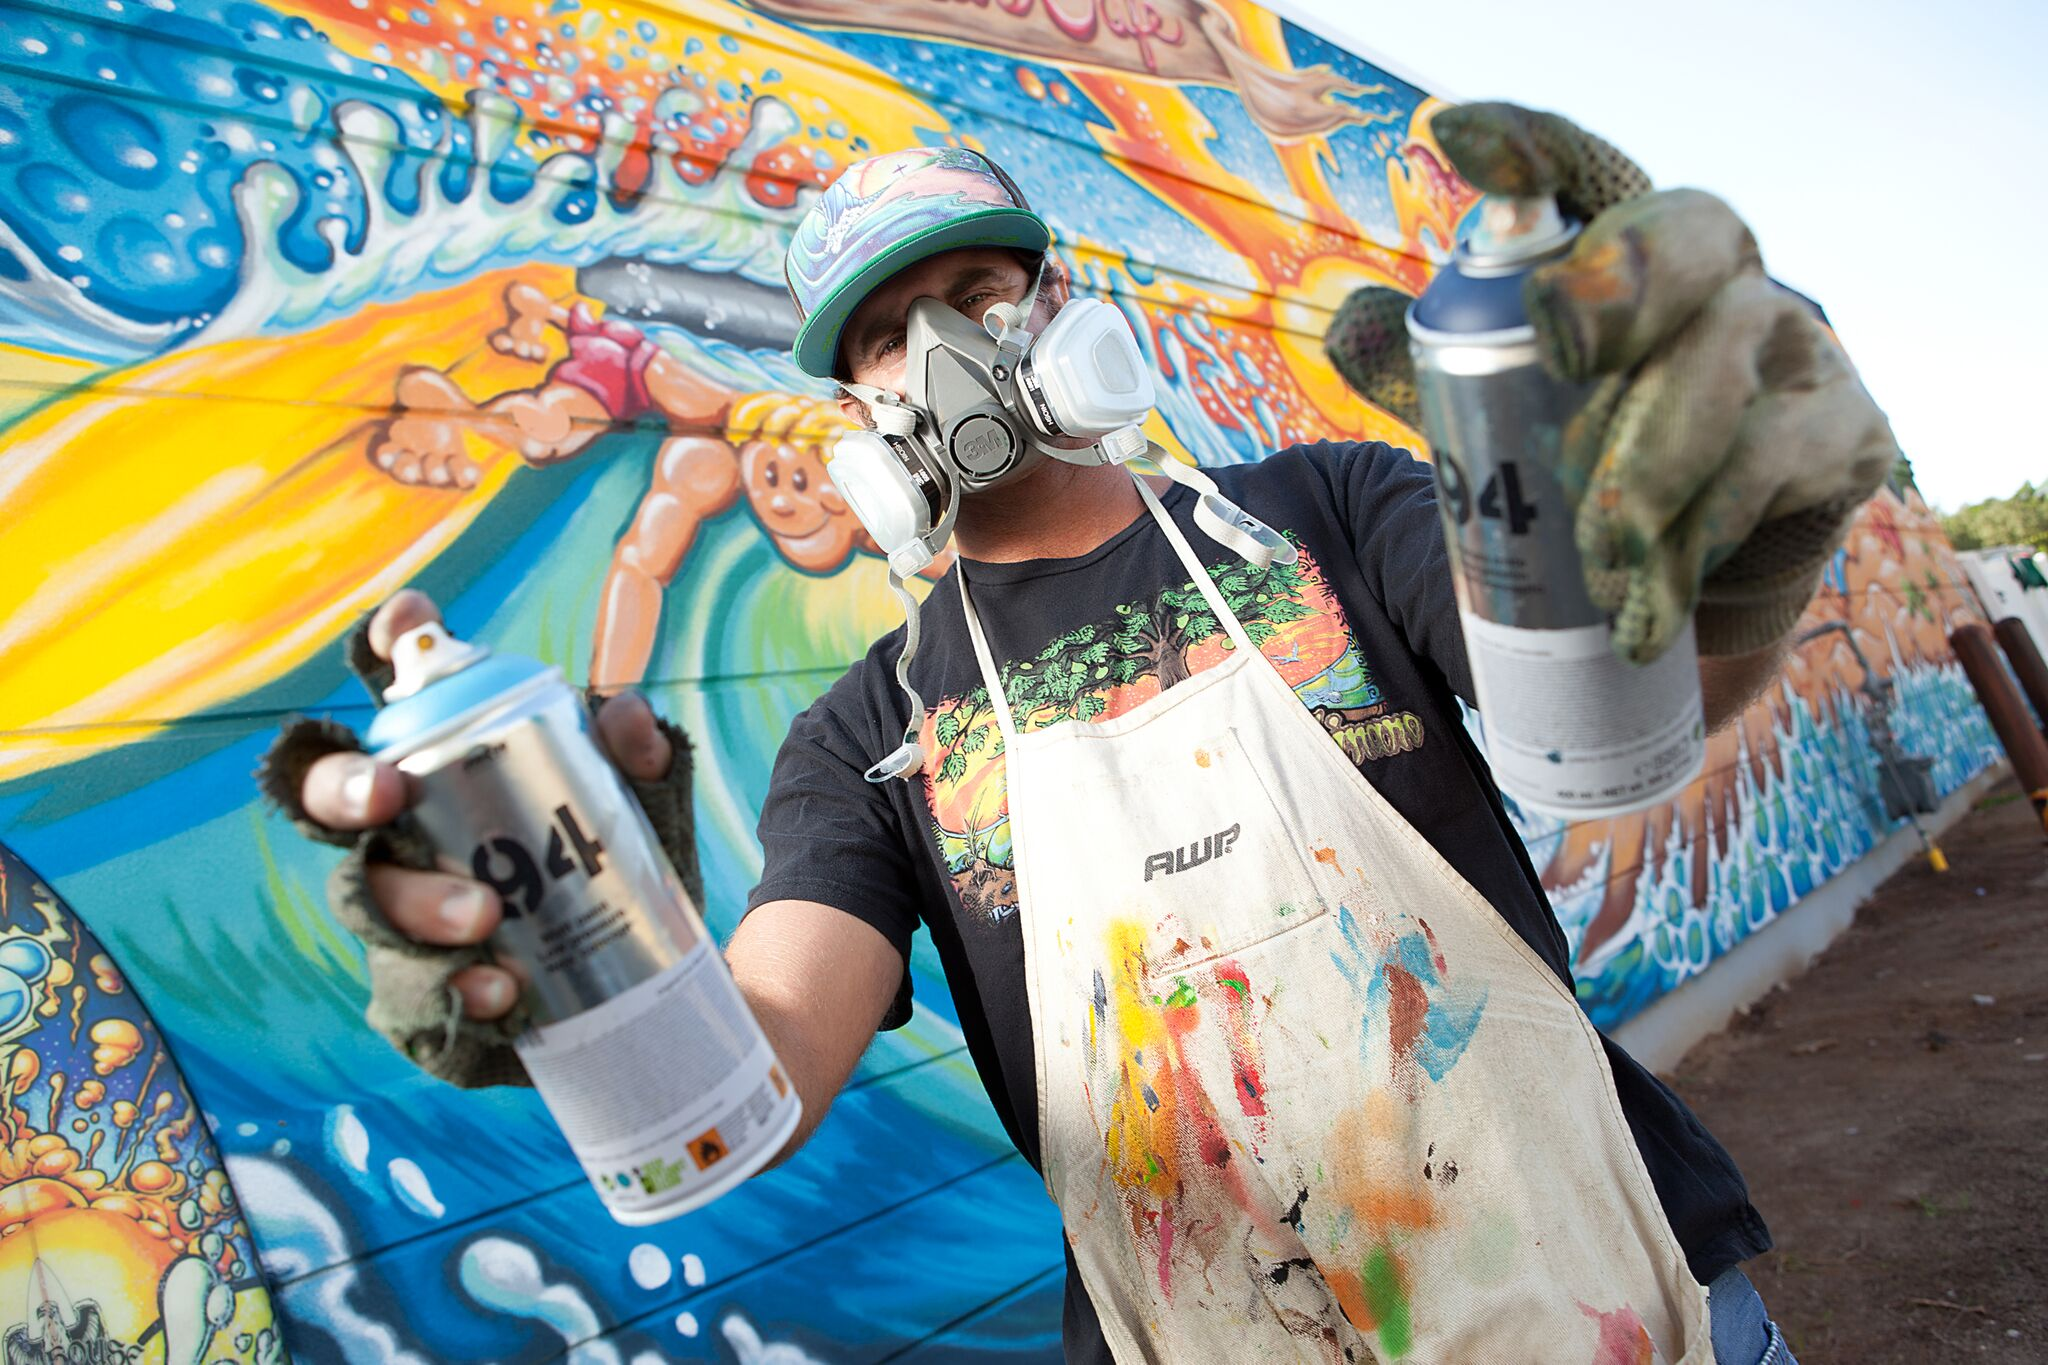 Drew Brophy holding spray paint cans Photo by Scott Smallin preview